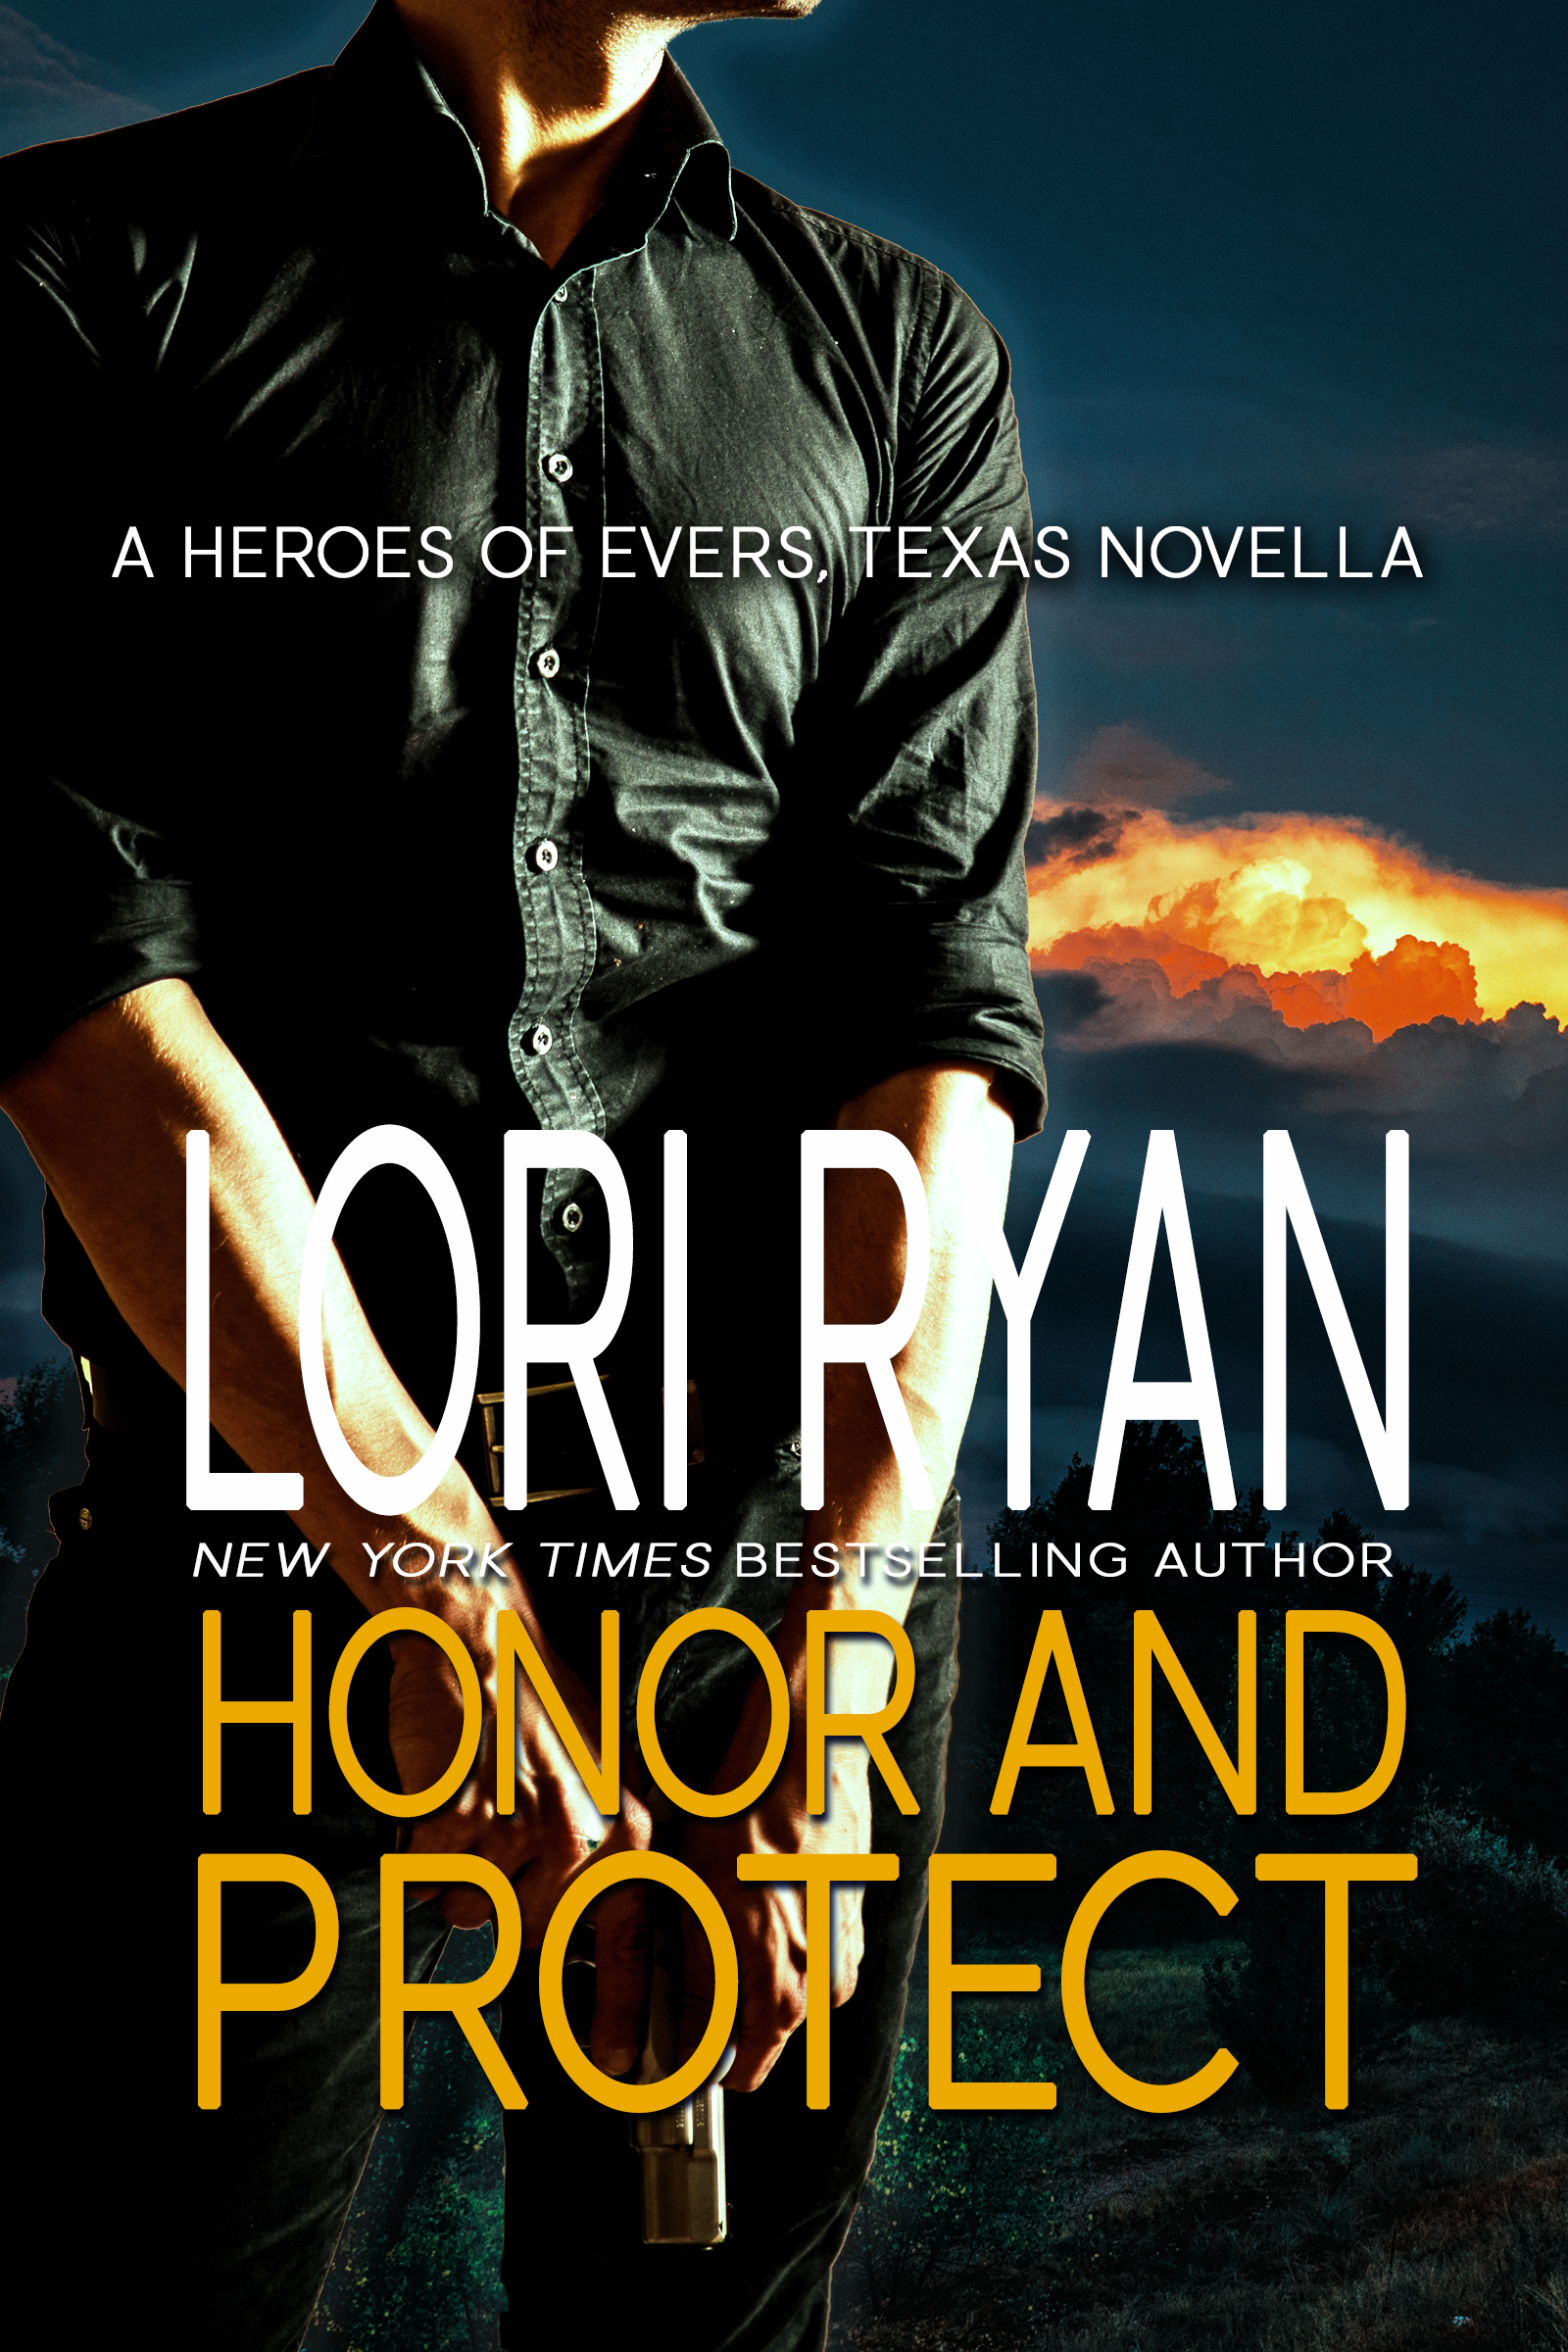 Honor and Protect: a small town romantic suspense novella